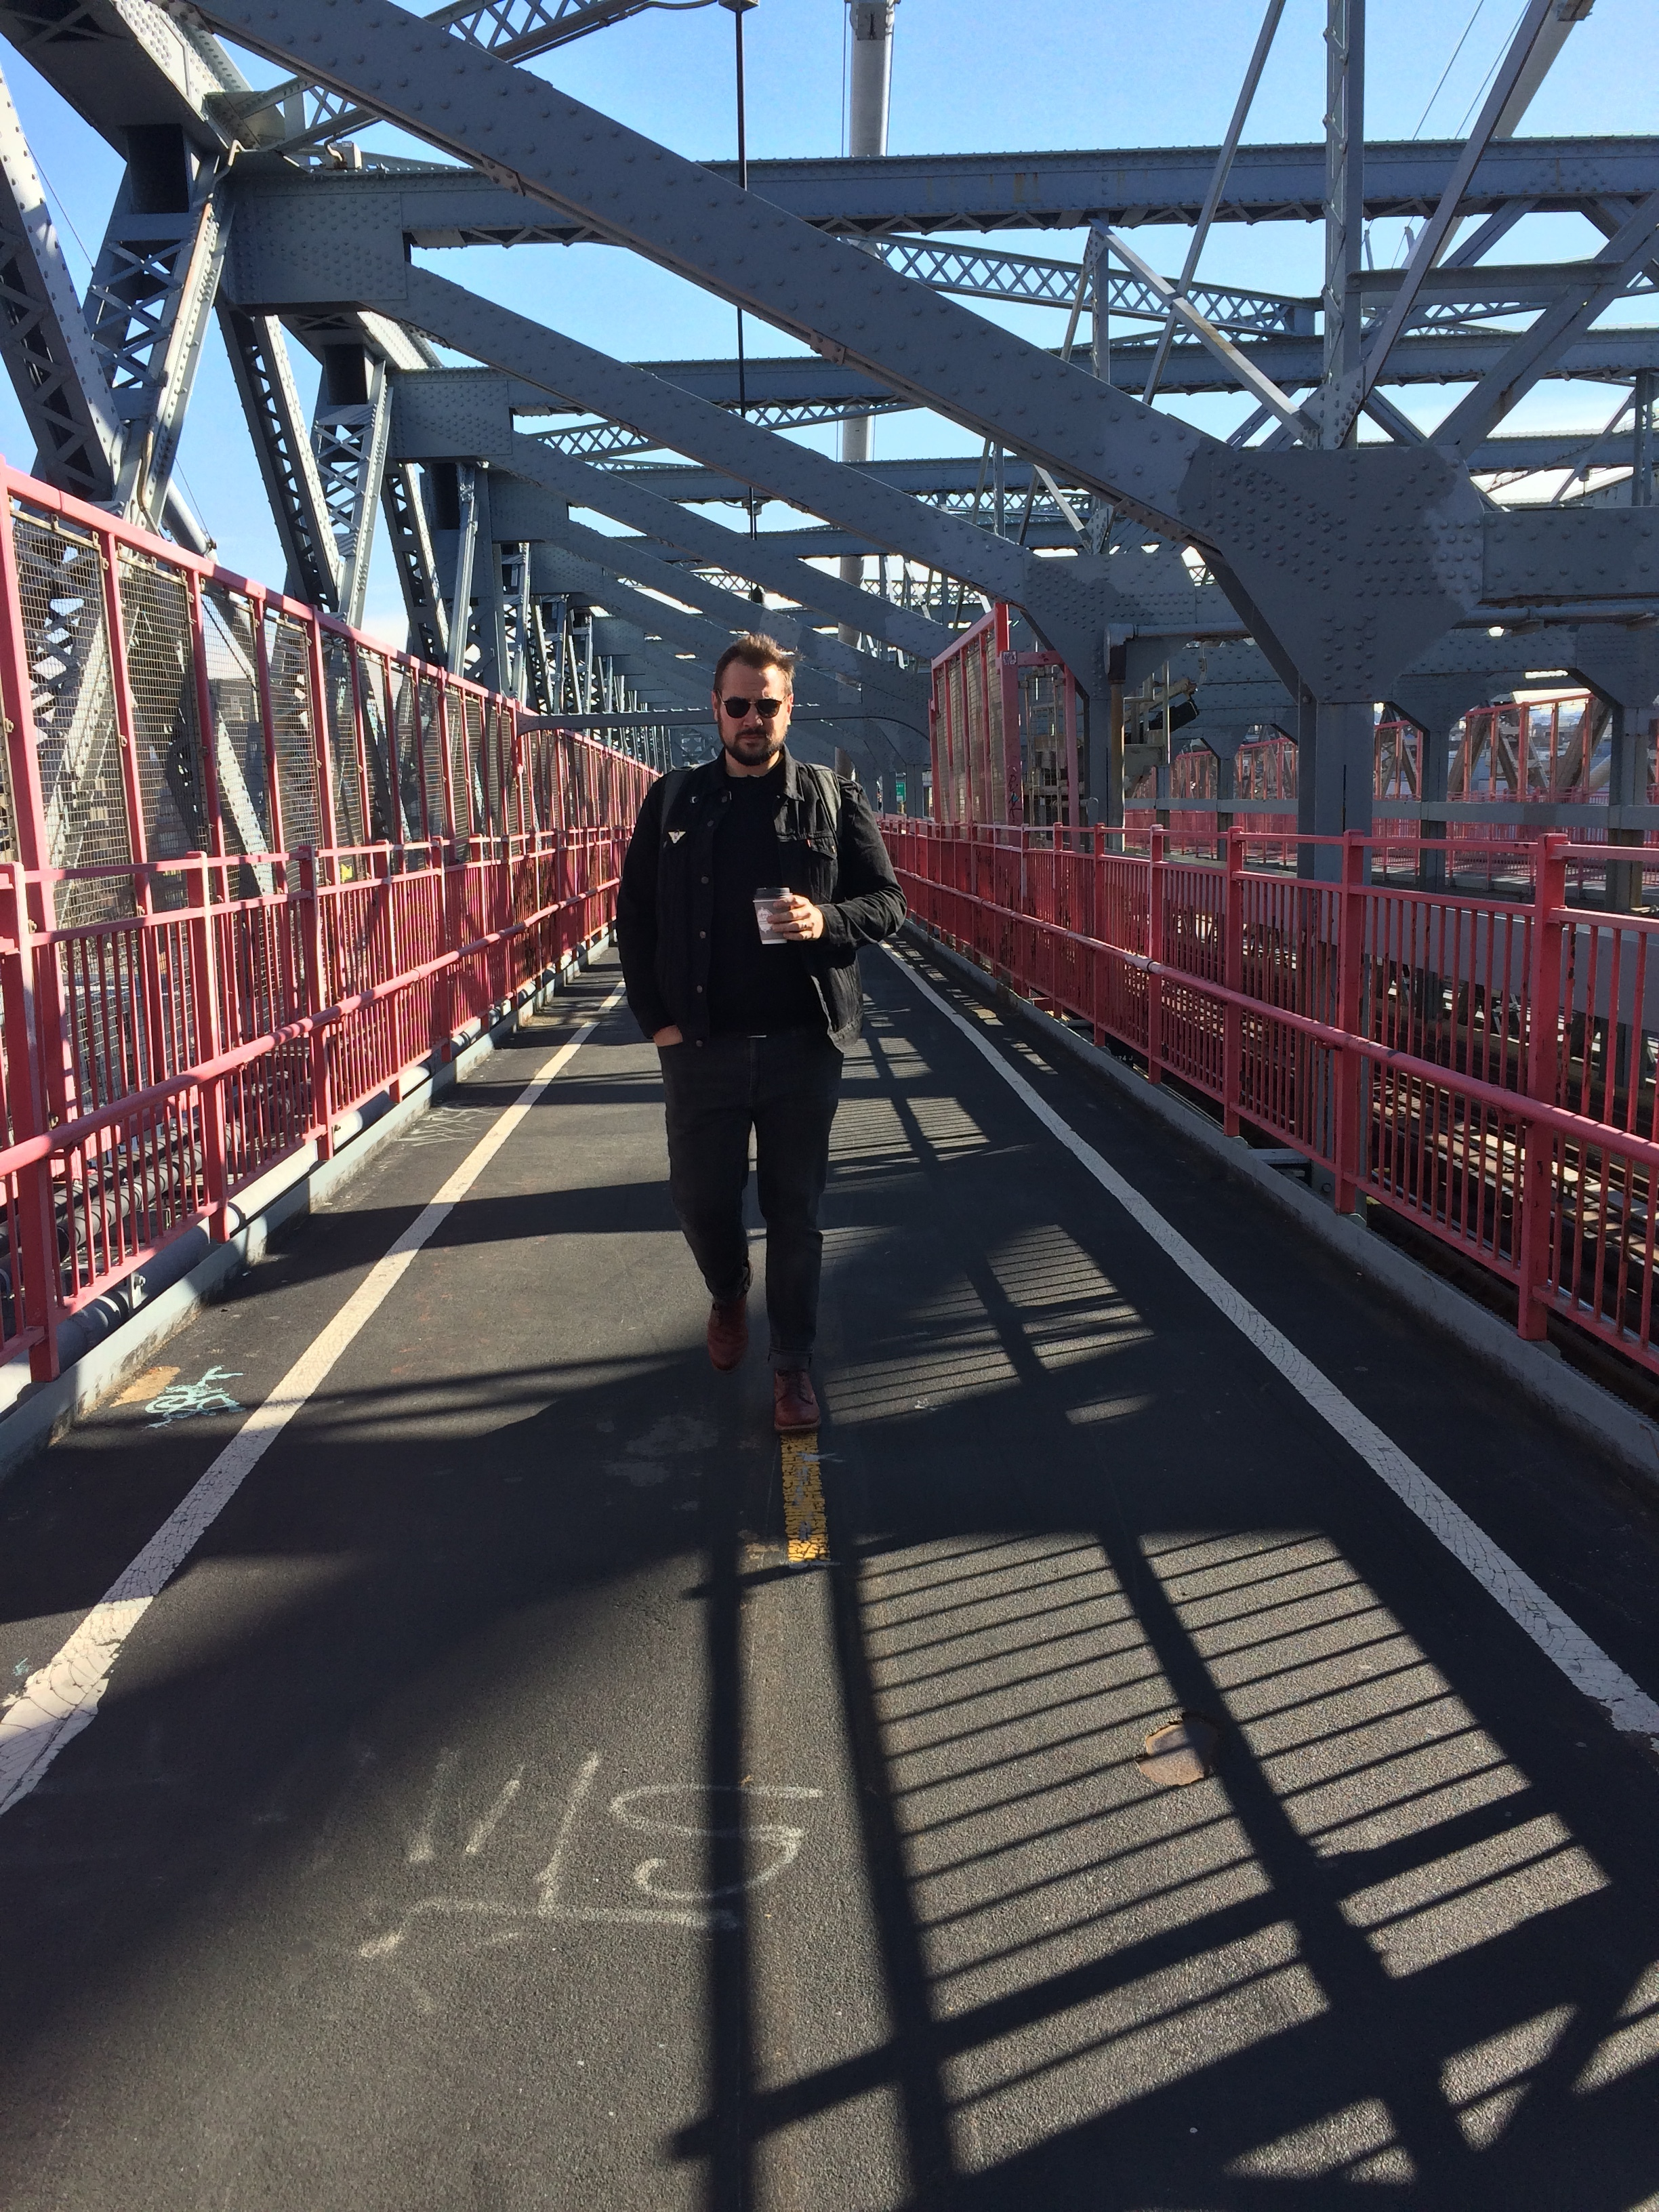 Williamsburg bridge2.JPG